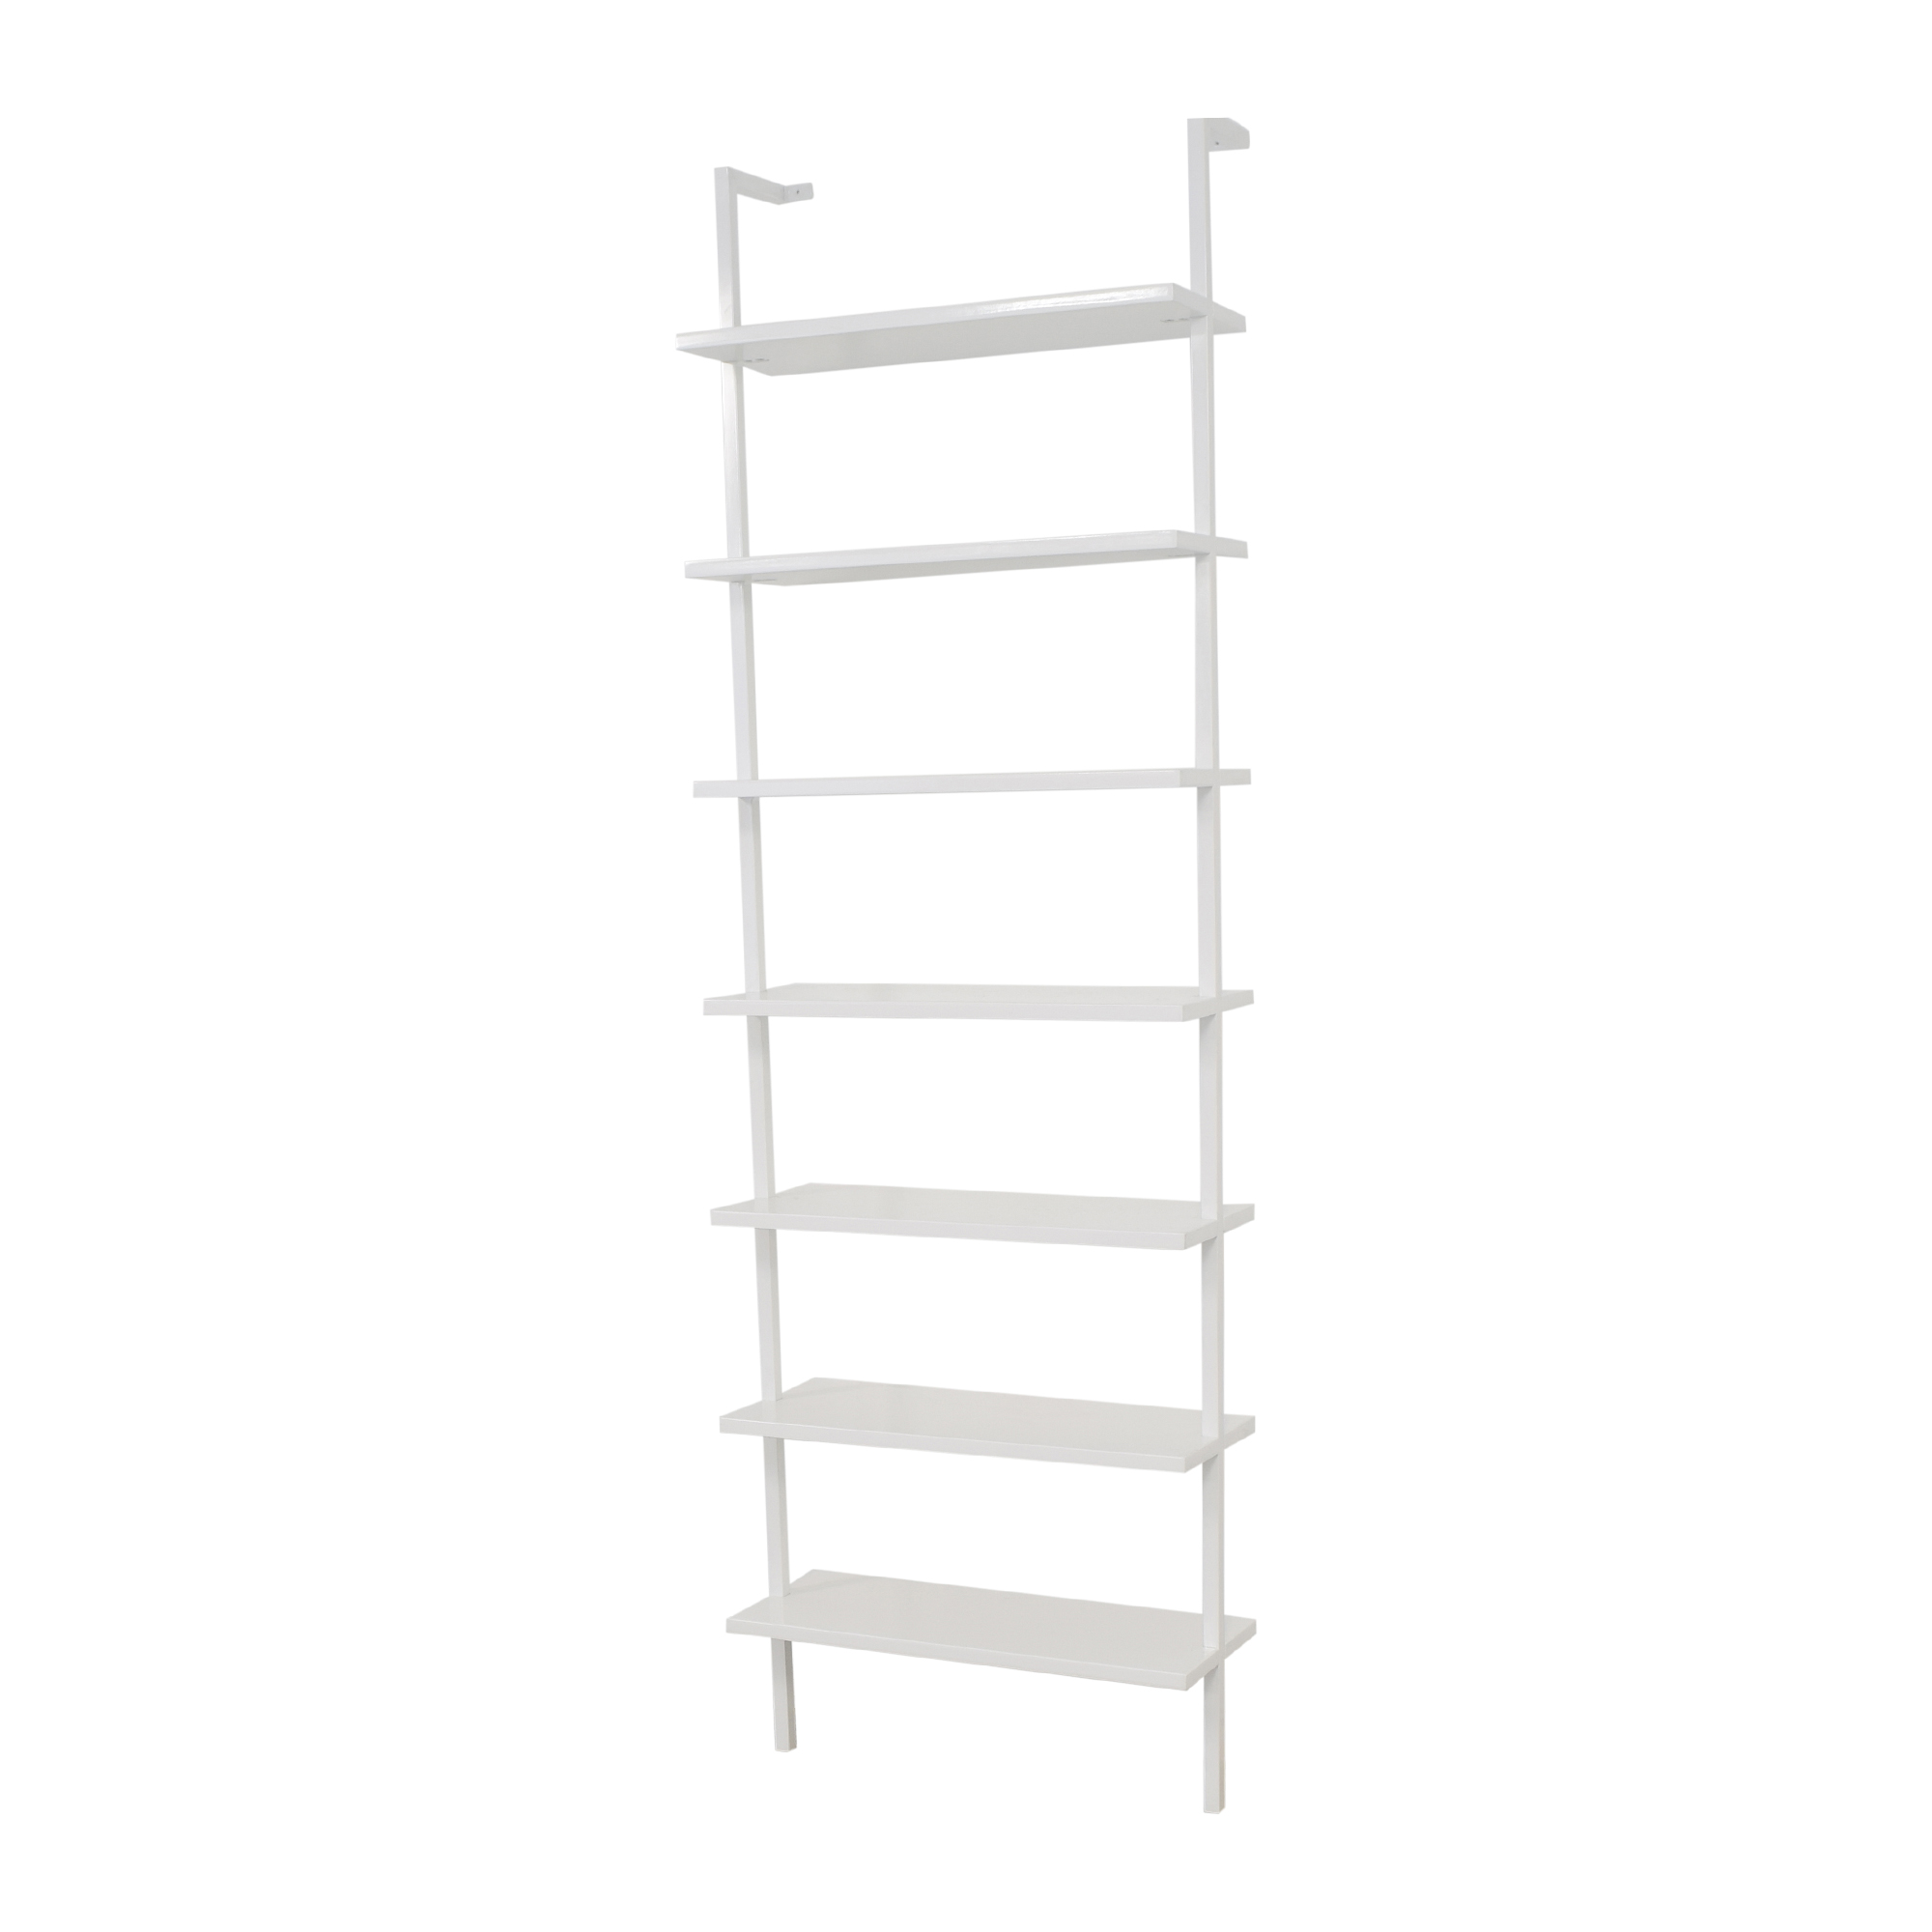 CB2 CB2 Stairway Wall Mounted Bookcase white